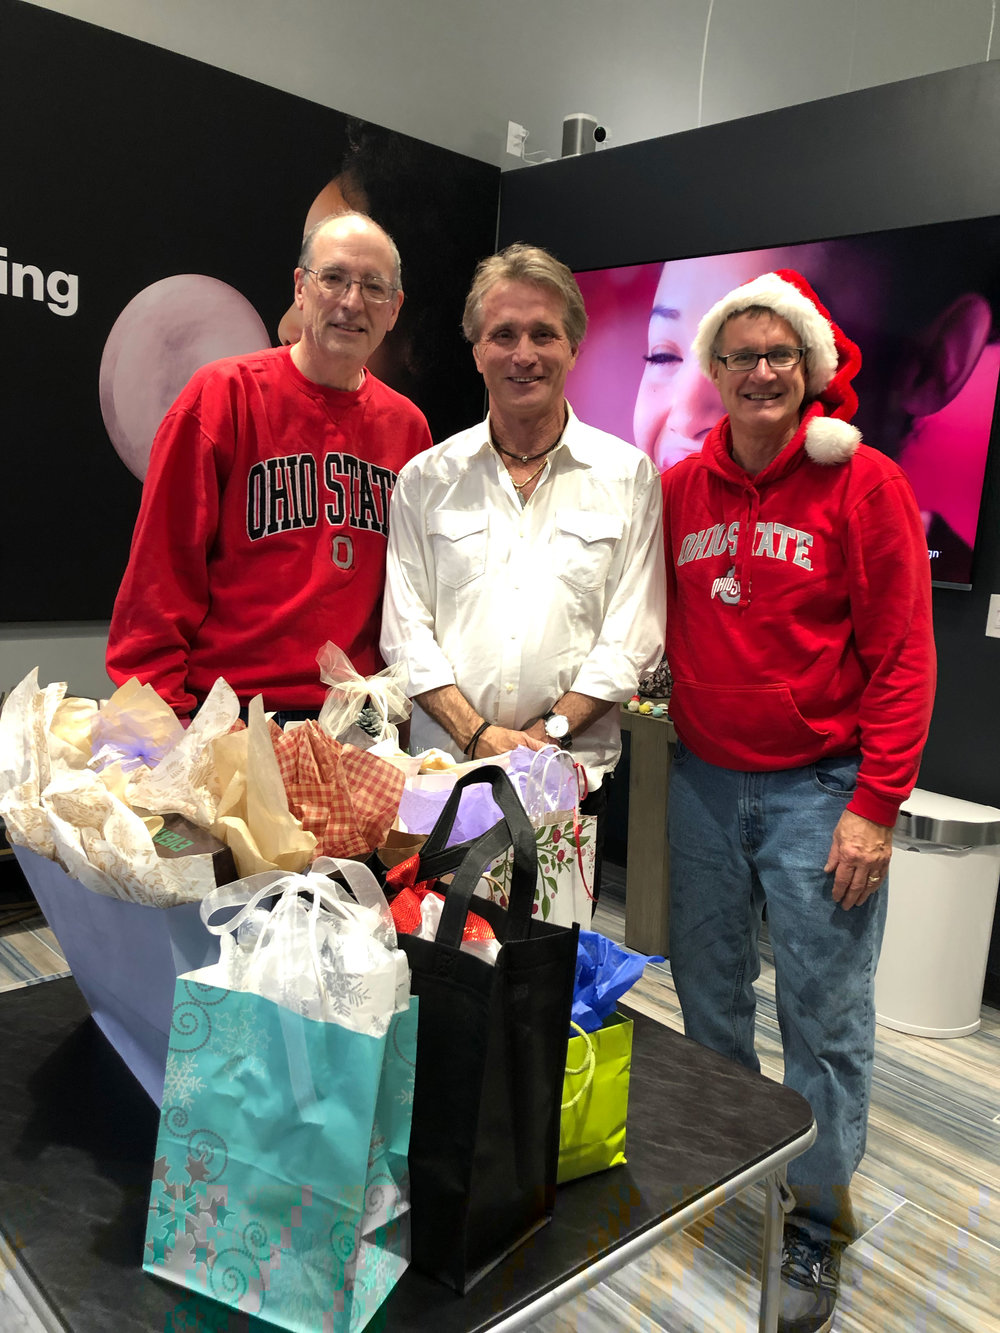 Prize winner Mike Gallagher, Dr. John White, DDS, MSD and Bill Brink of Beachcliff Market Square shared the holiday spirit!